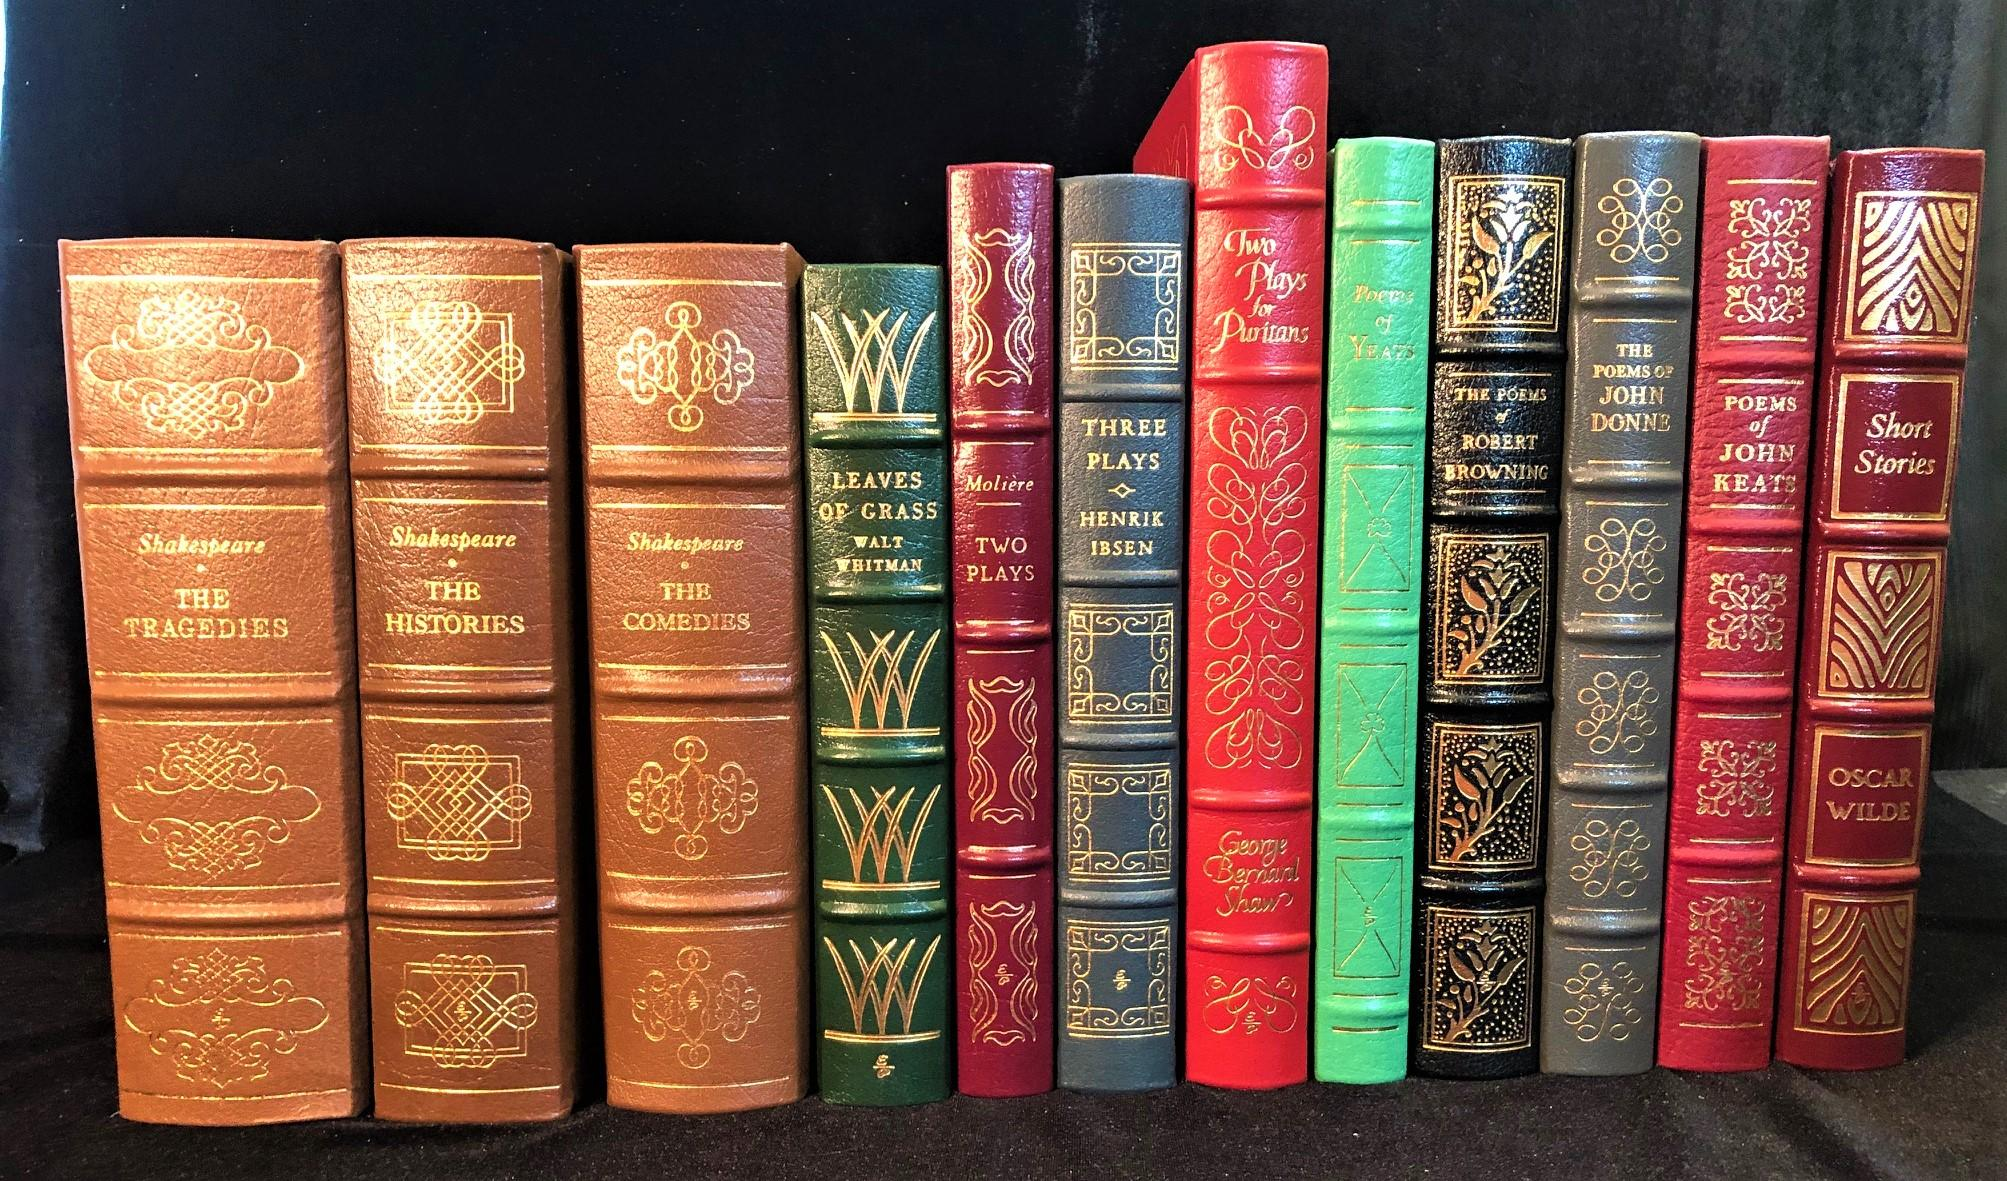 PLAYS AND POETRY BY EASTON PRESS 100 GREATEST BOOKS EVER WRITTEN IN 12 VOLUMES